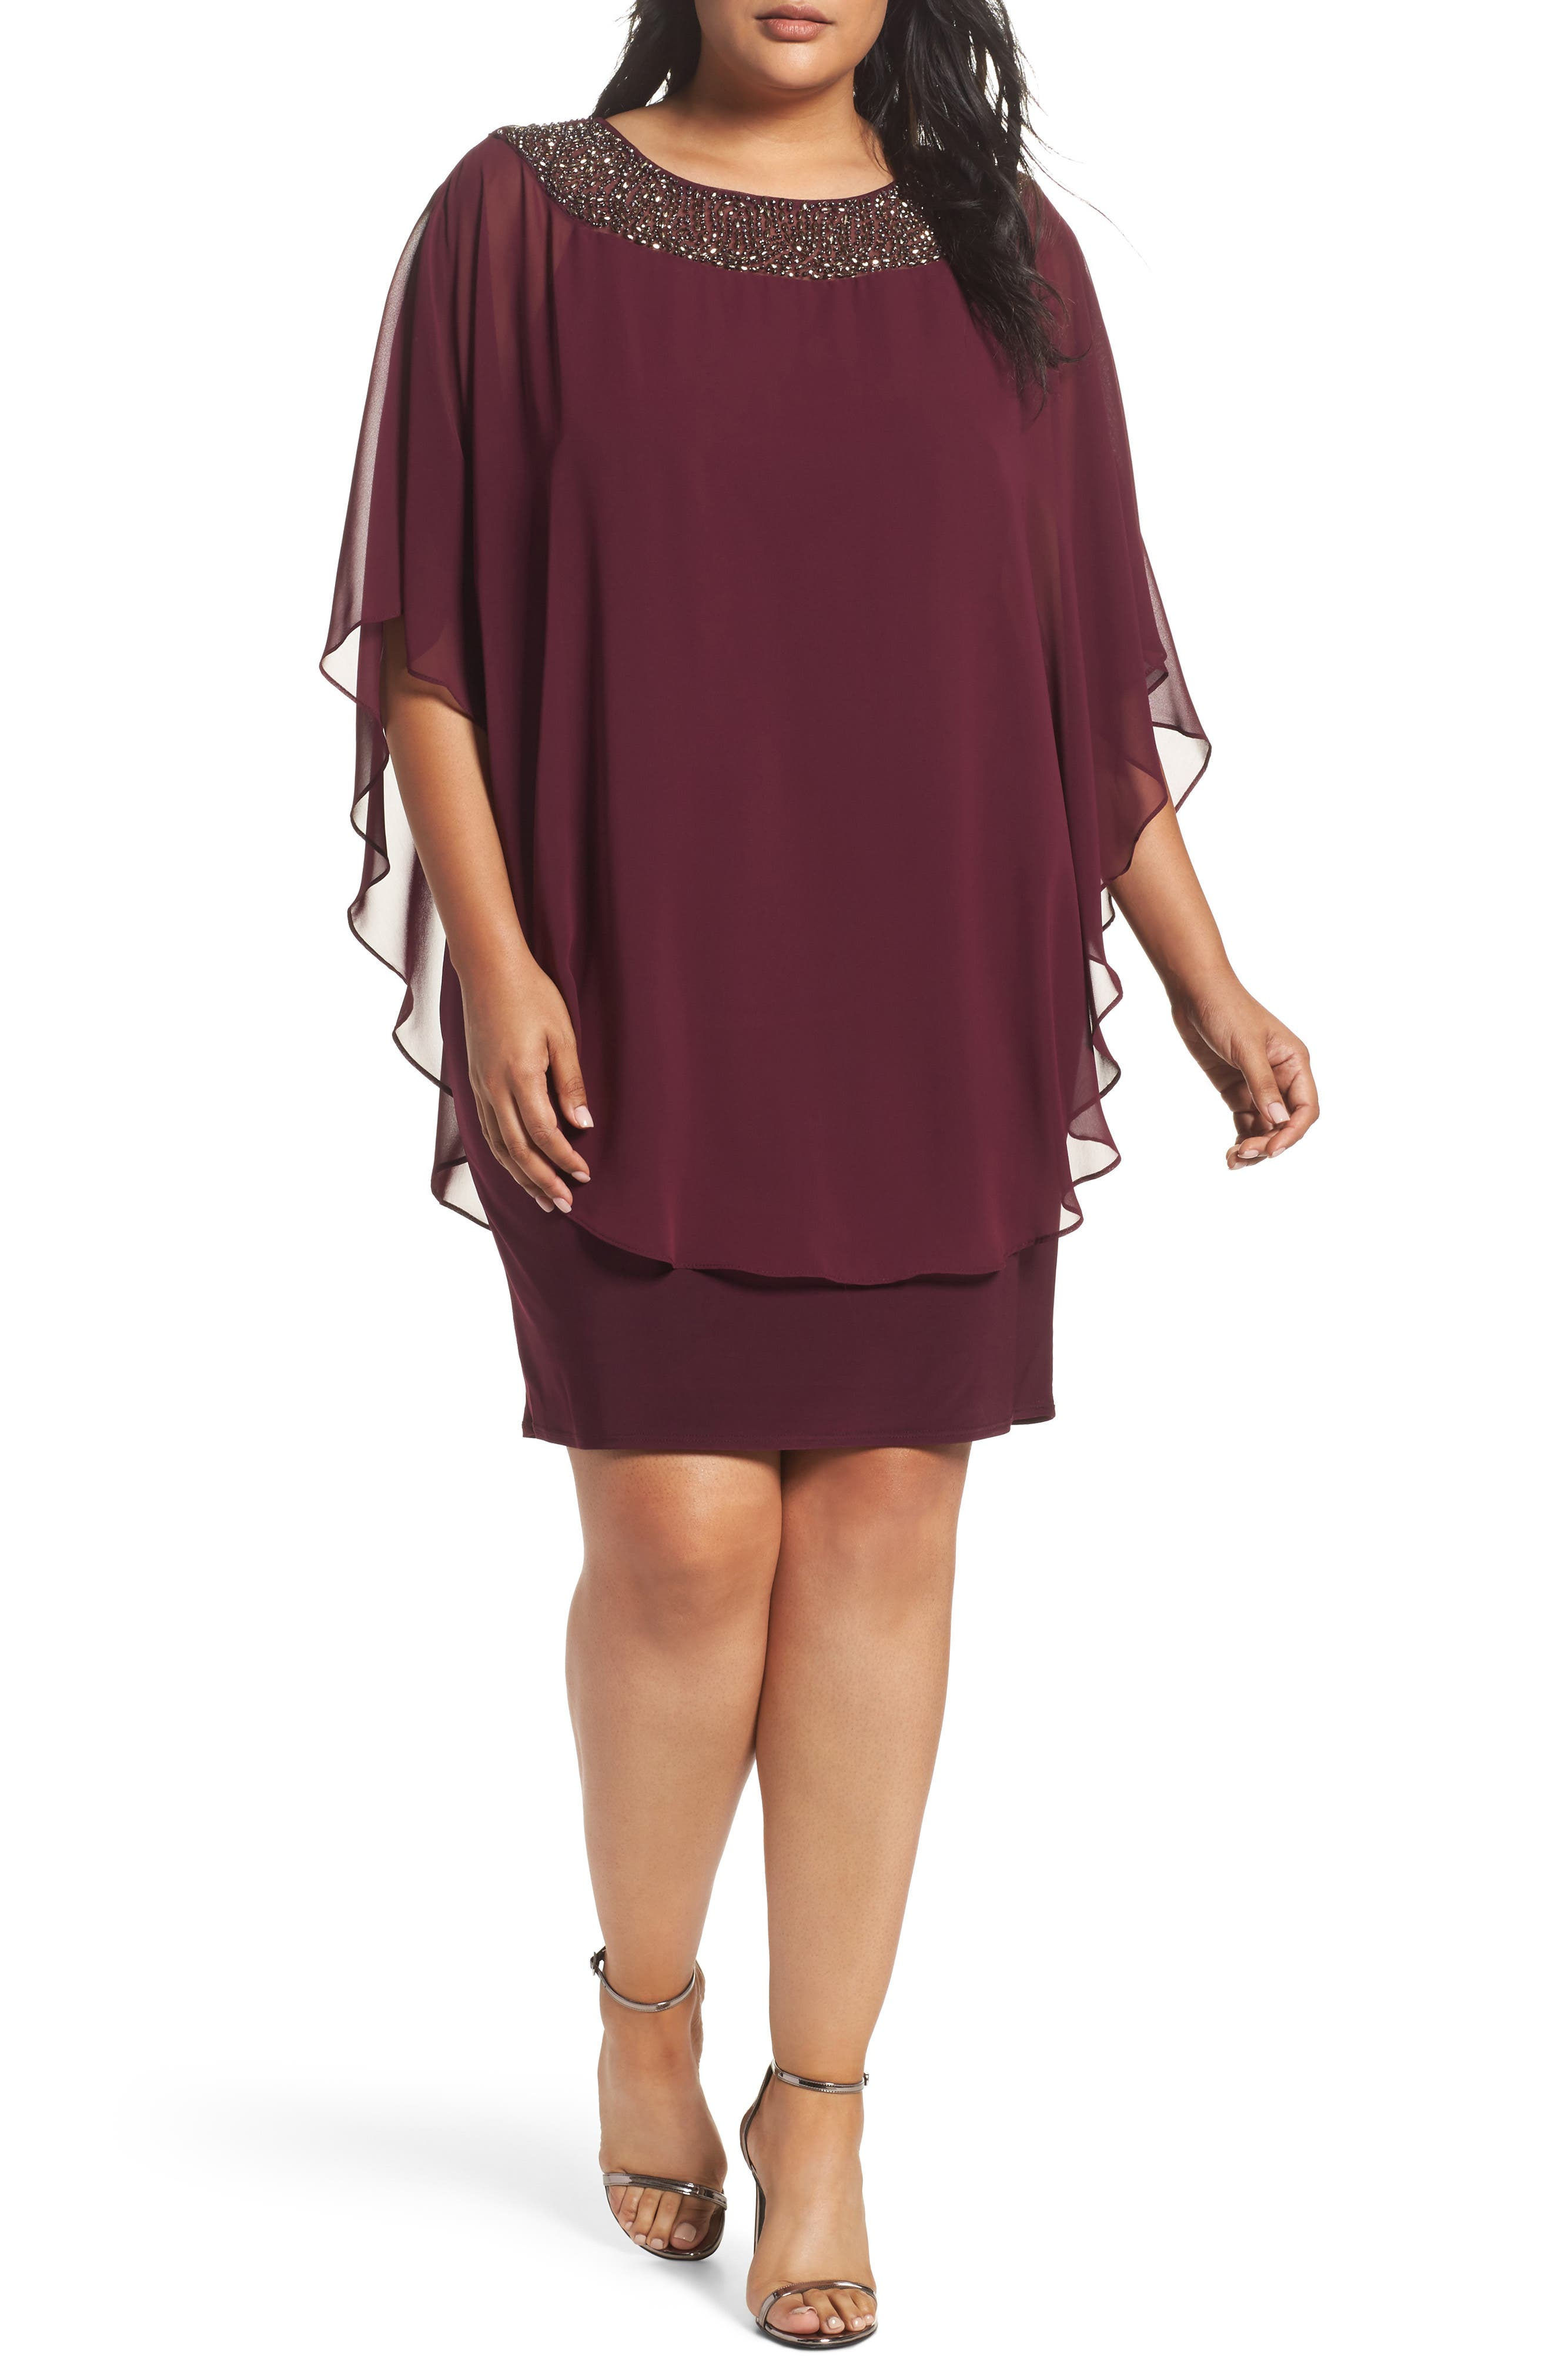 Main Image - Xscape Embellished Chiffon Overlay Jersey Sheath Dress (Plus Size)